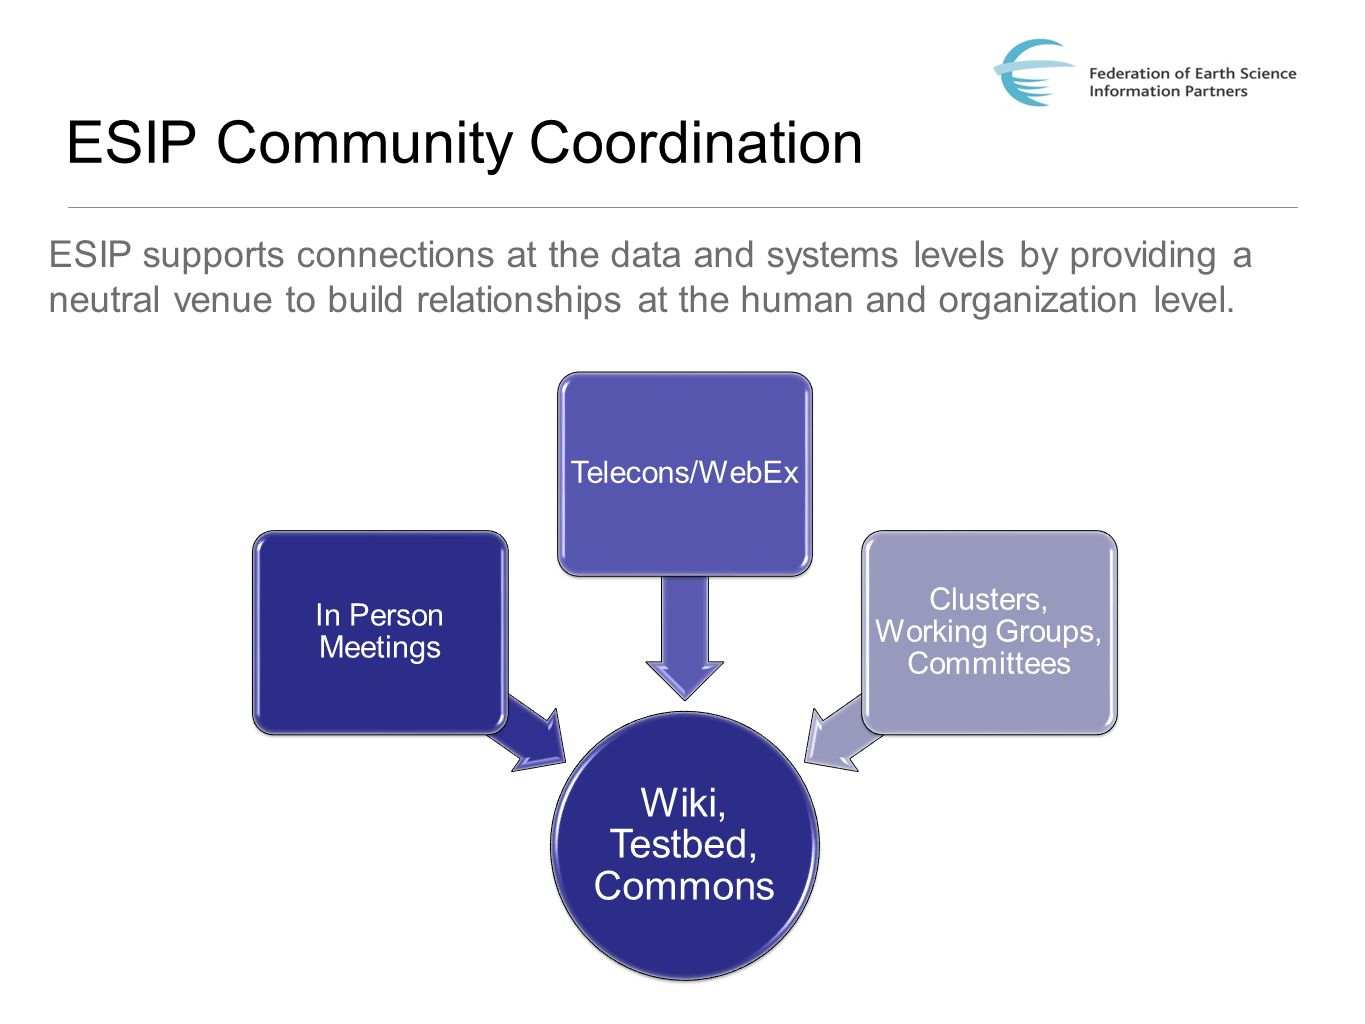 ESIP Community Coordination ESIP supports connections at the data and systems levels by providing a neutral venue to build relationships at the human and organization level.